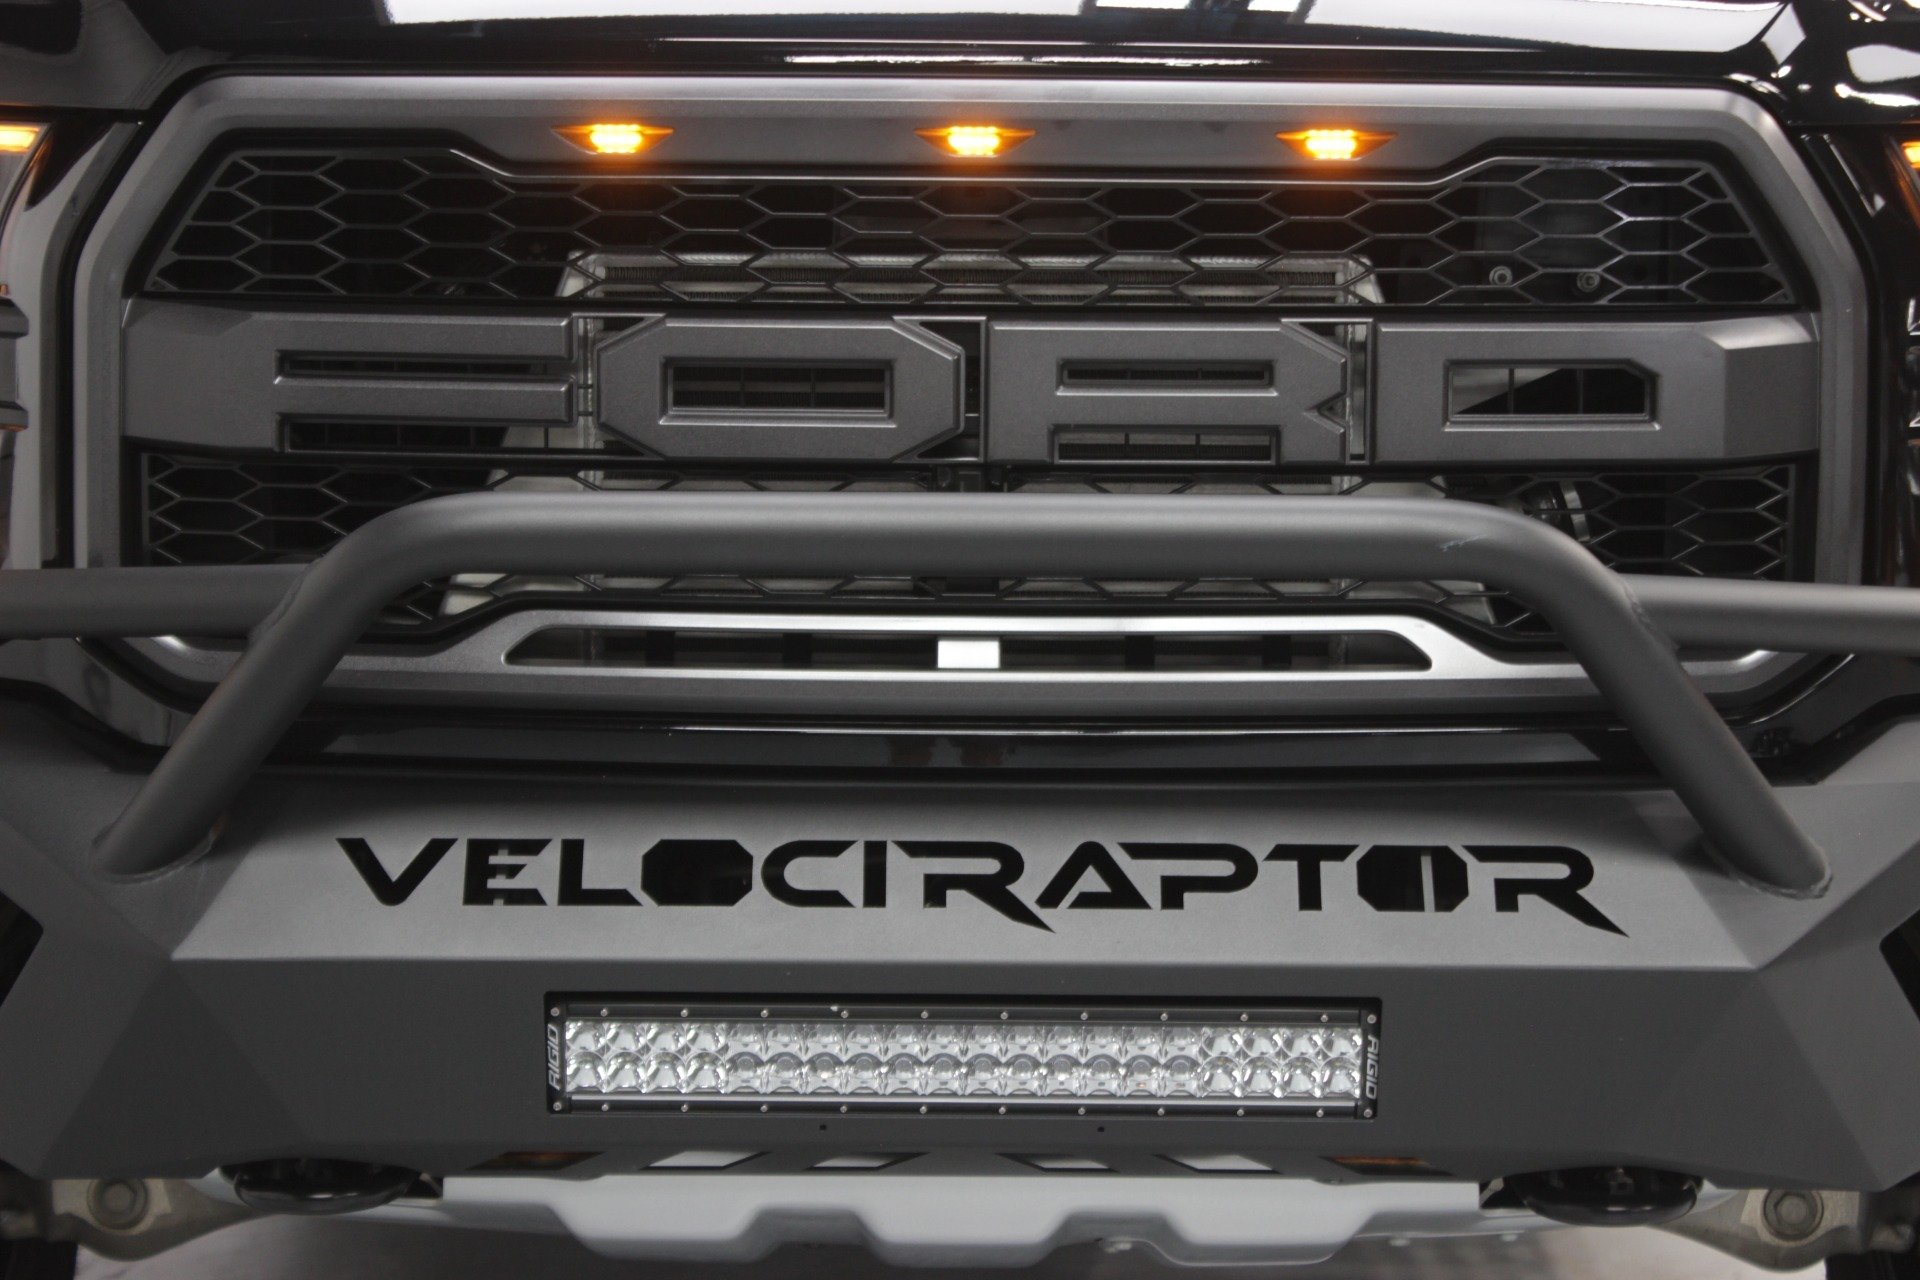 Used 2019 Ford F-150 RAPTOR 4x4 HENNESSY VELOCIRAPTOR VR600 UPGRADE (600HP) for sale $99,995 at Formula Imports in Charlotte NC 28227 8